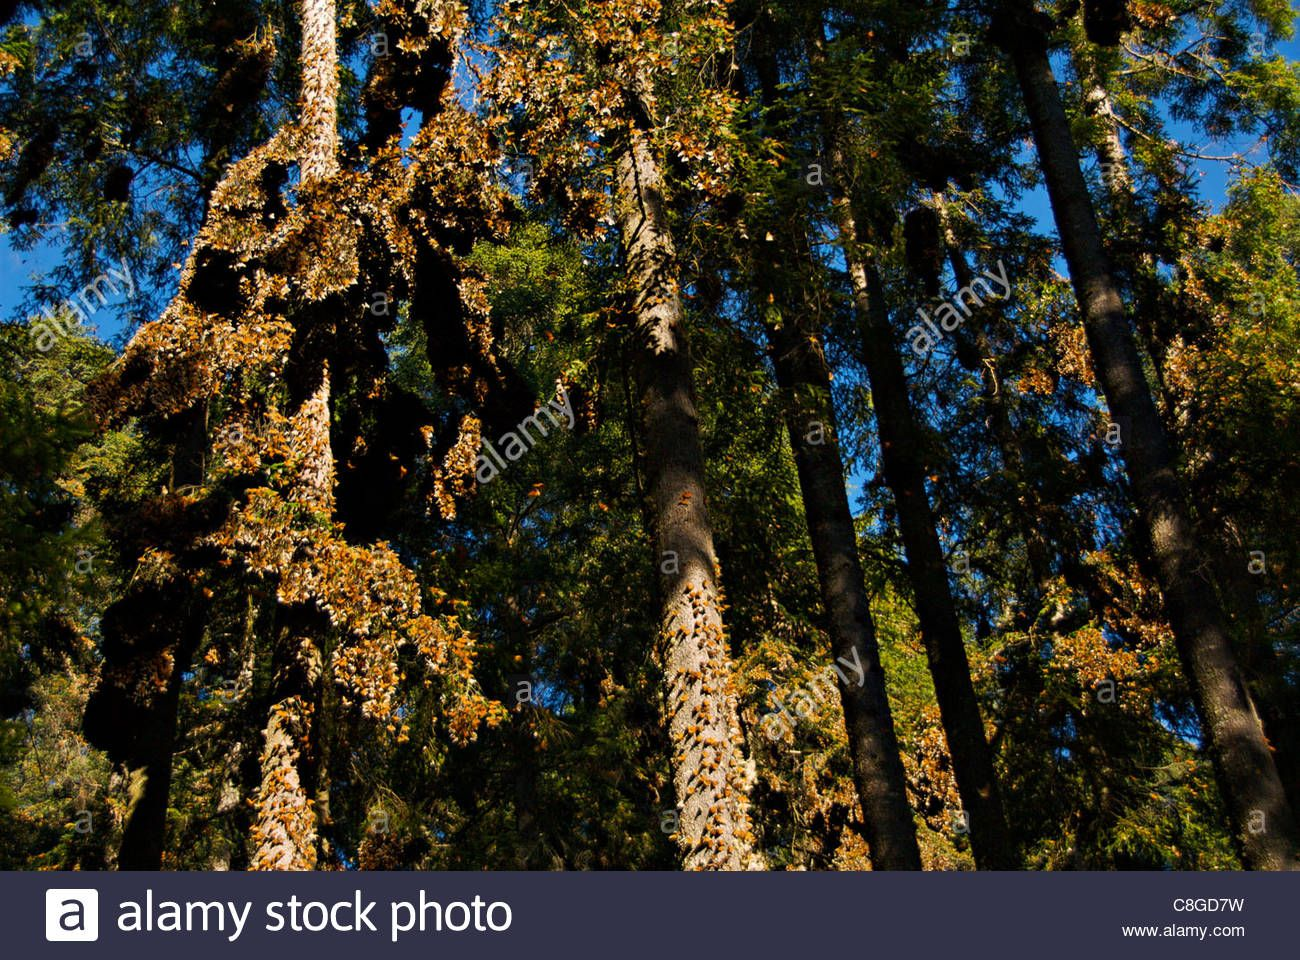 Image Result For Oyamel Fir Trees